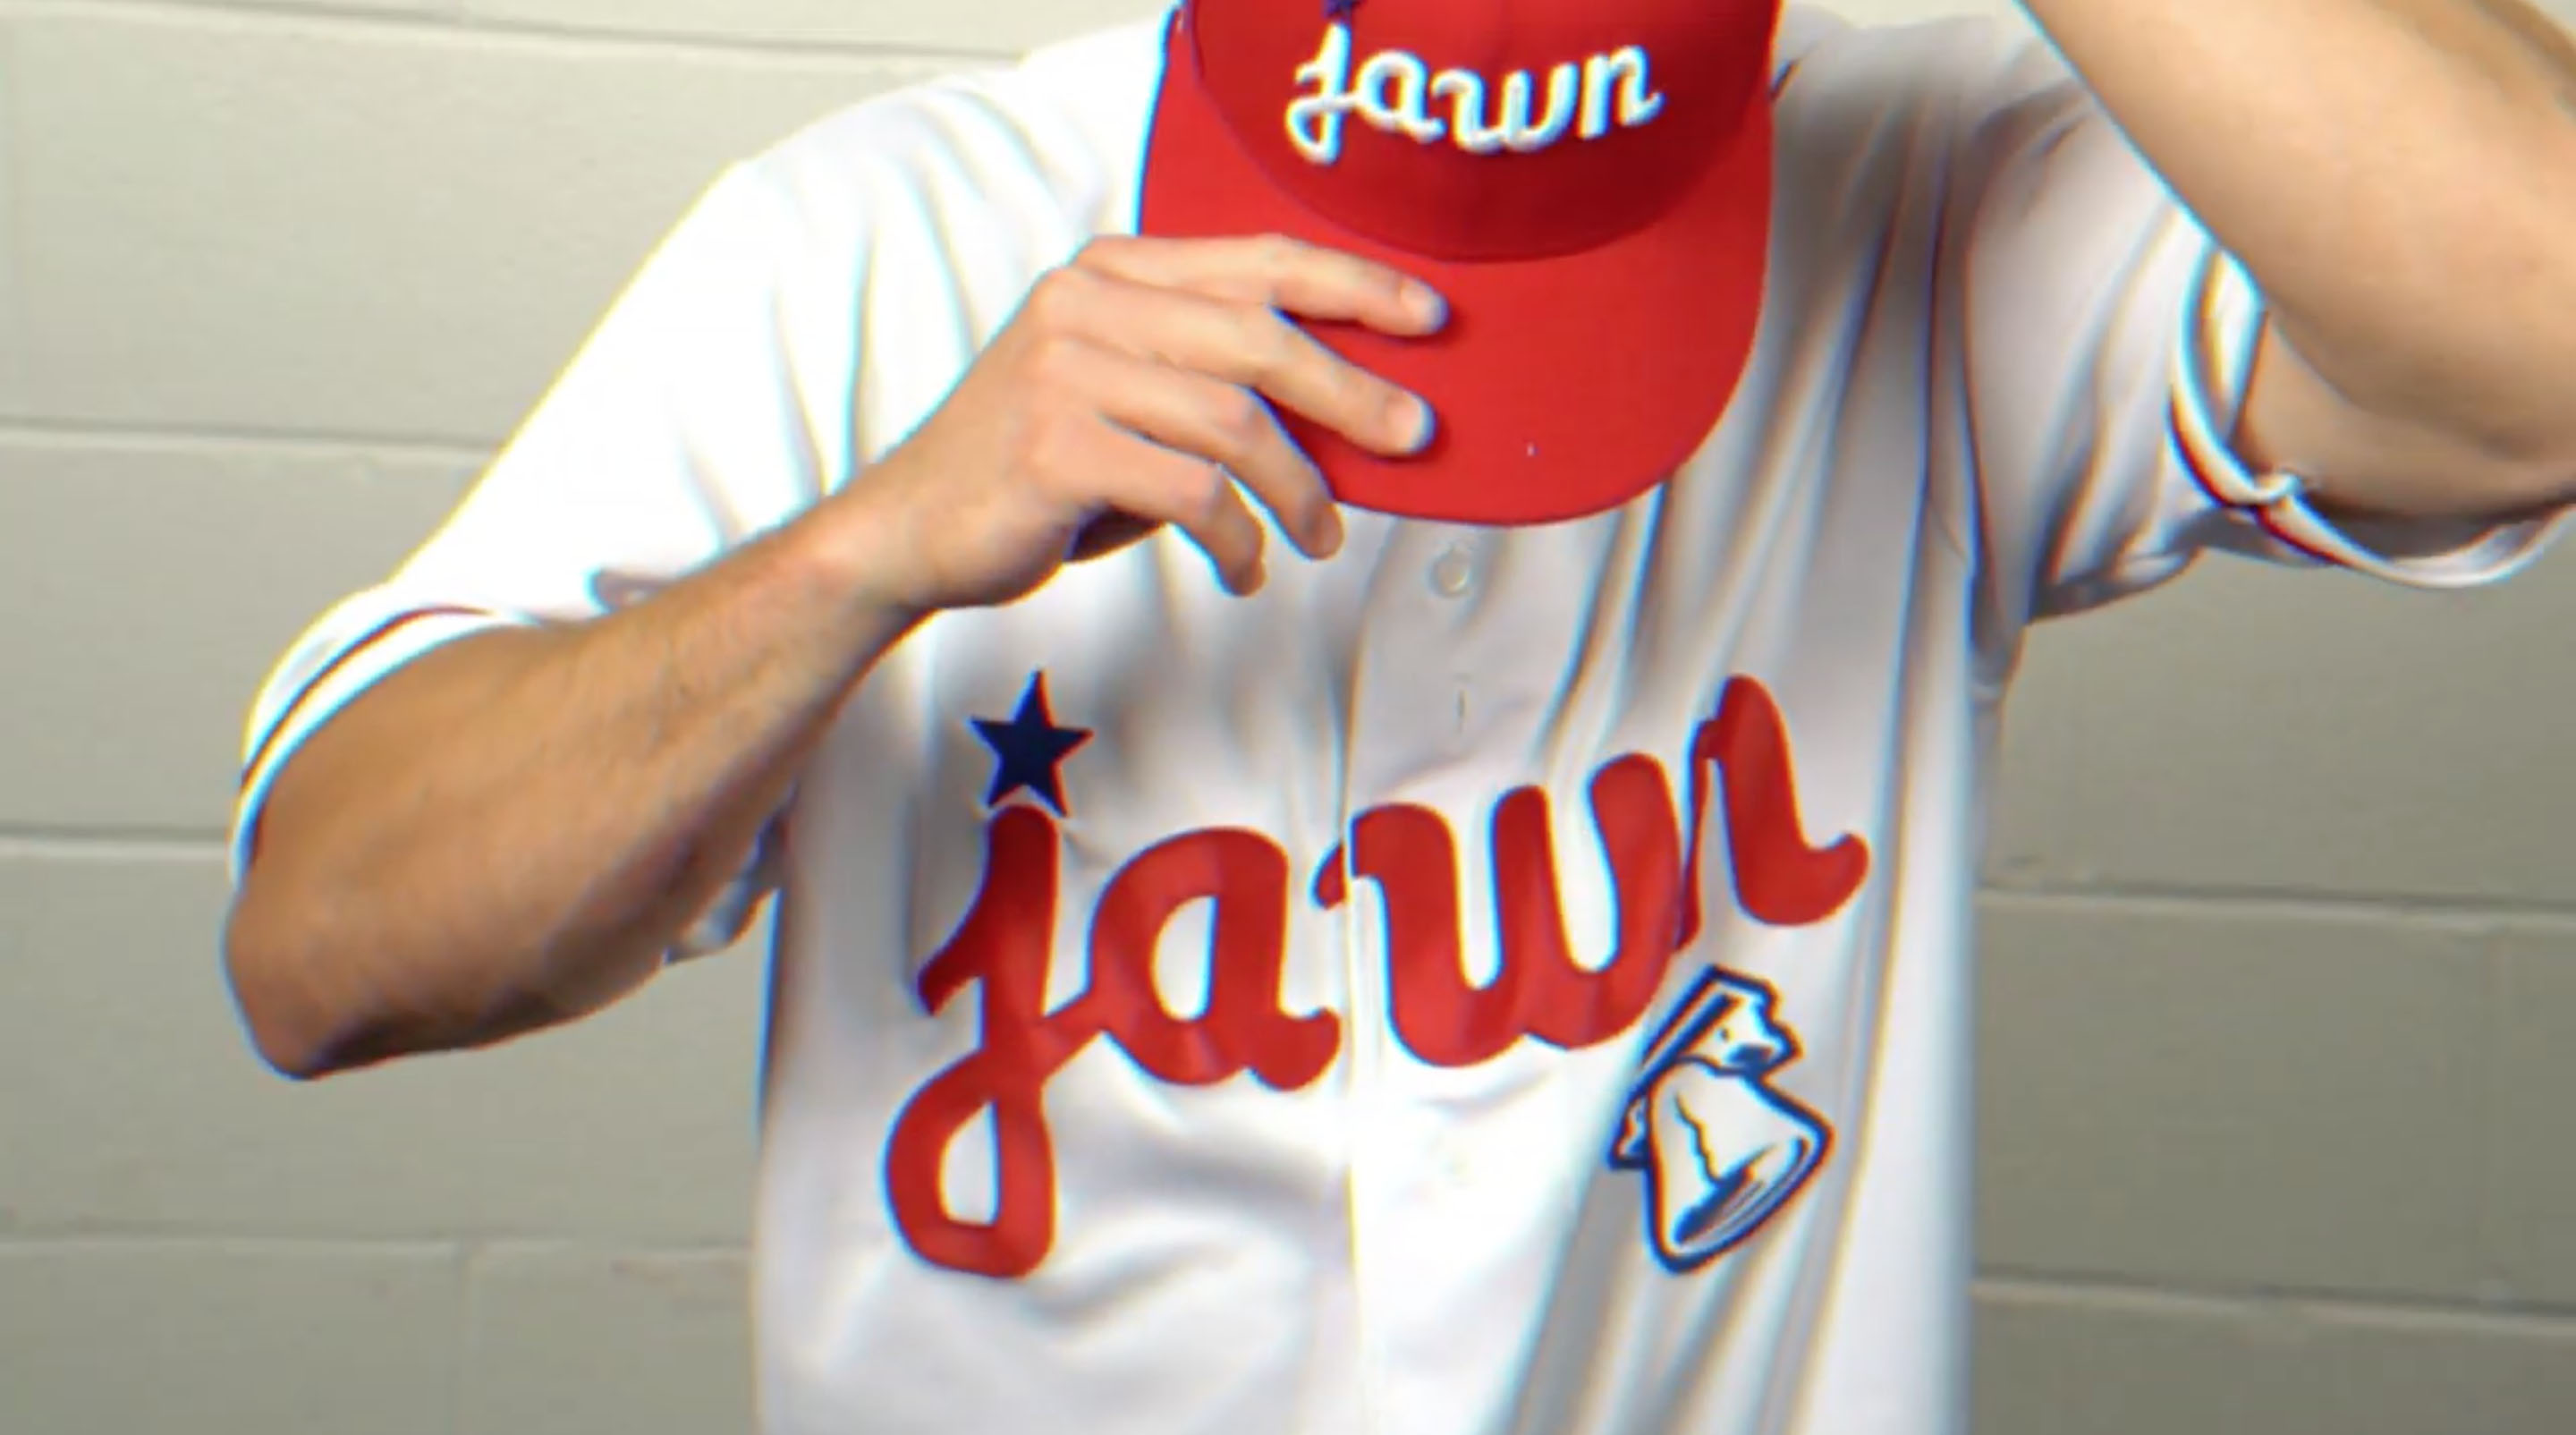 IronPigs to be Jawn